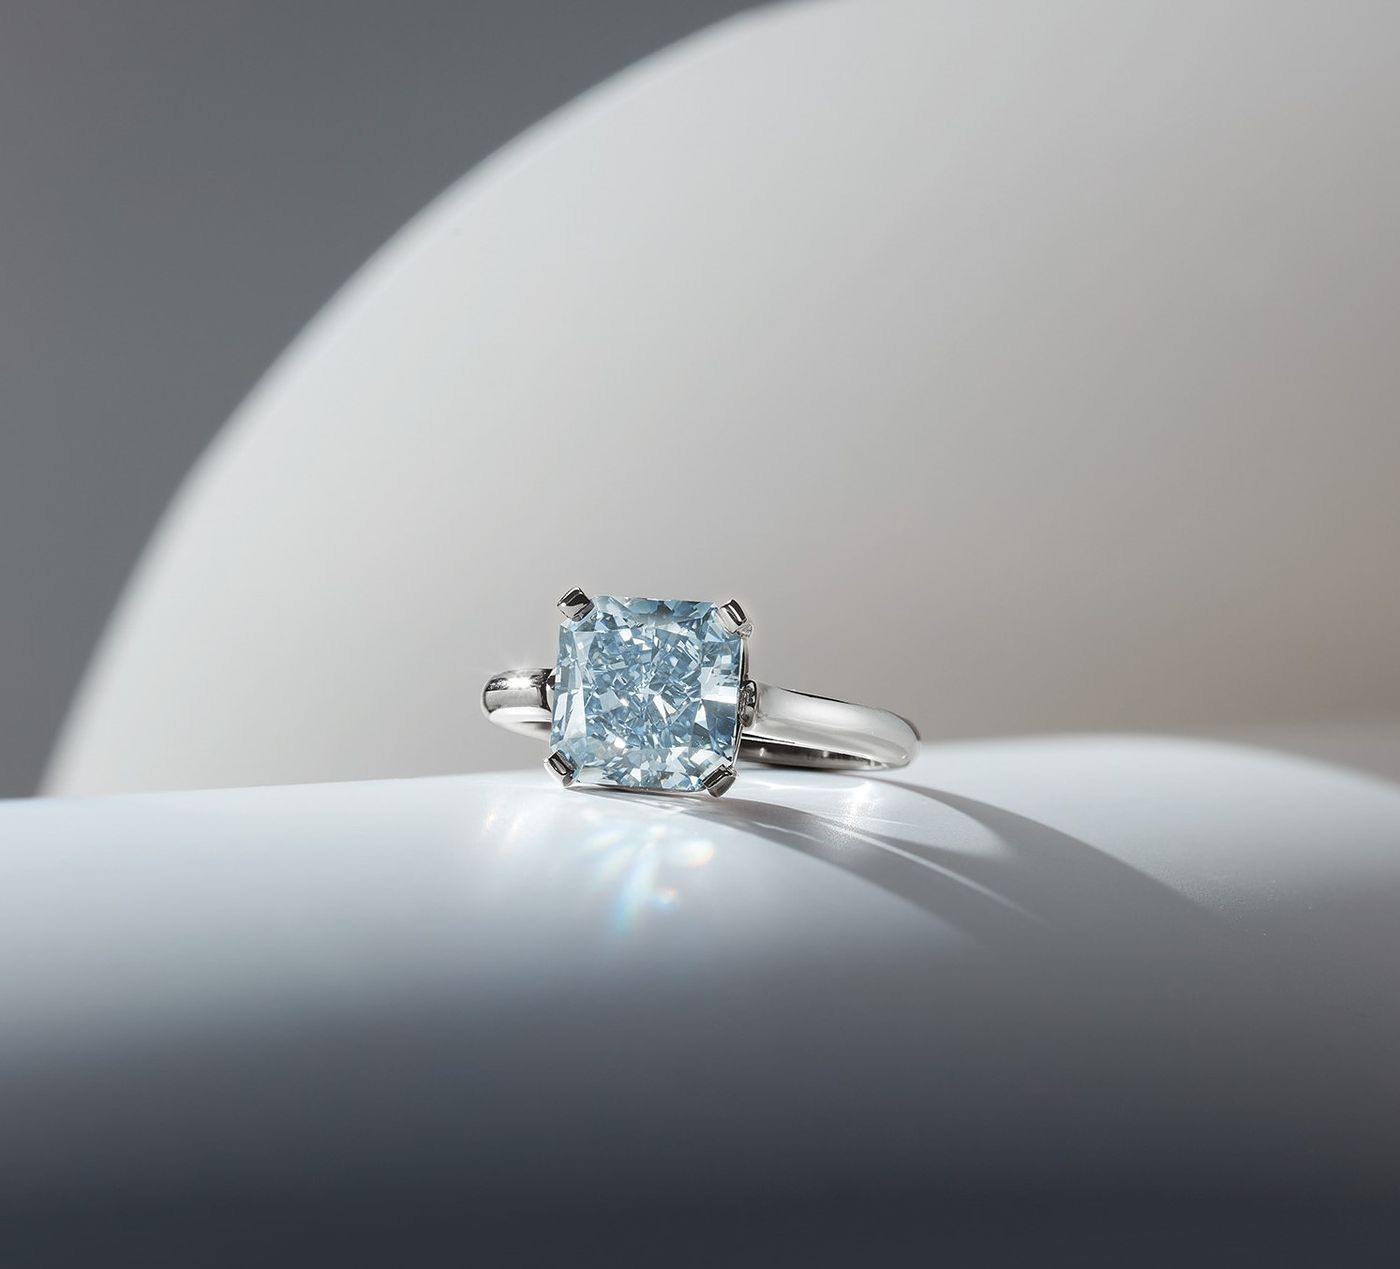 Incredibly rare and exceedingly difficult to cut, blue diamonds rank among the most prized gemstones.